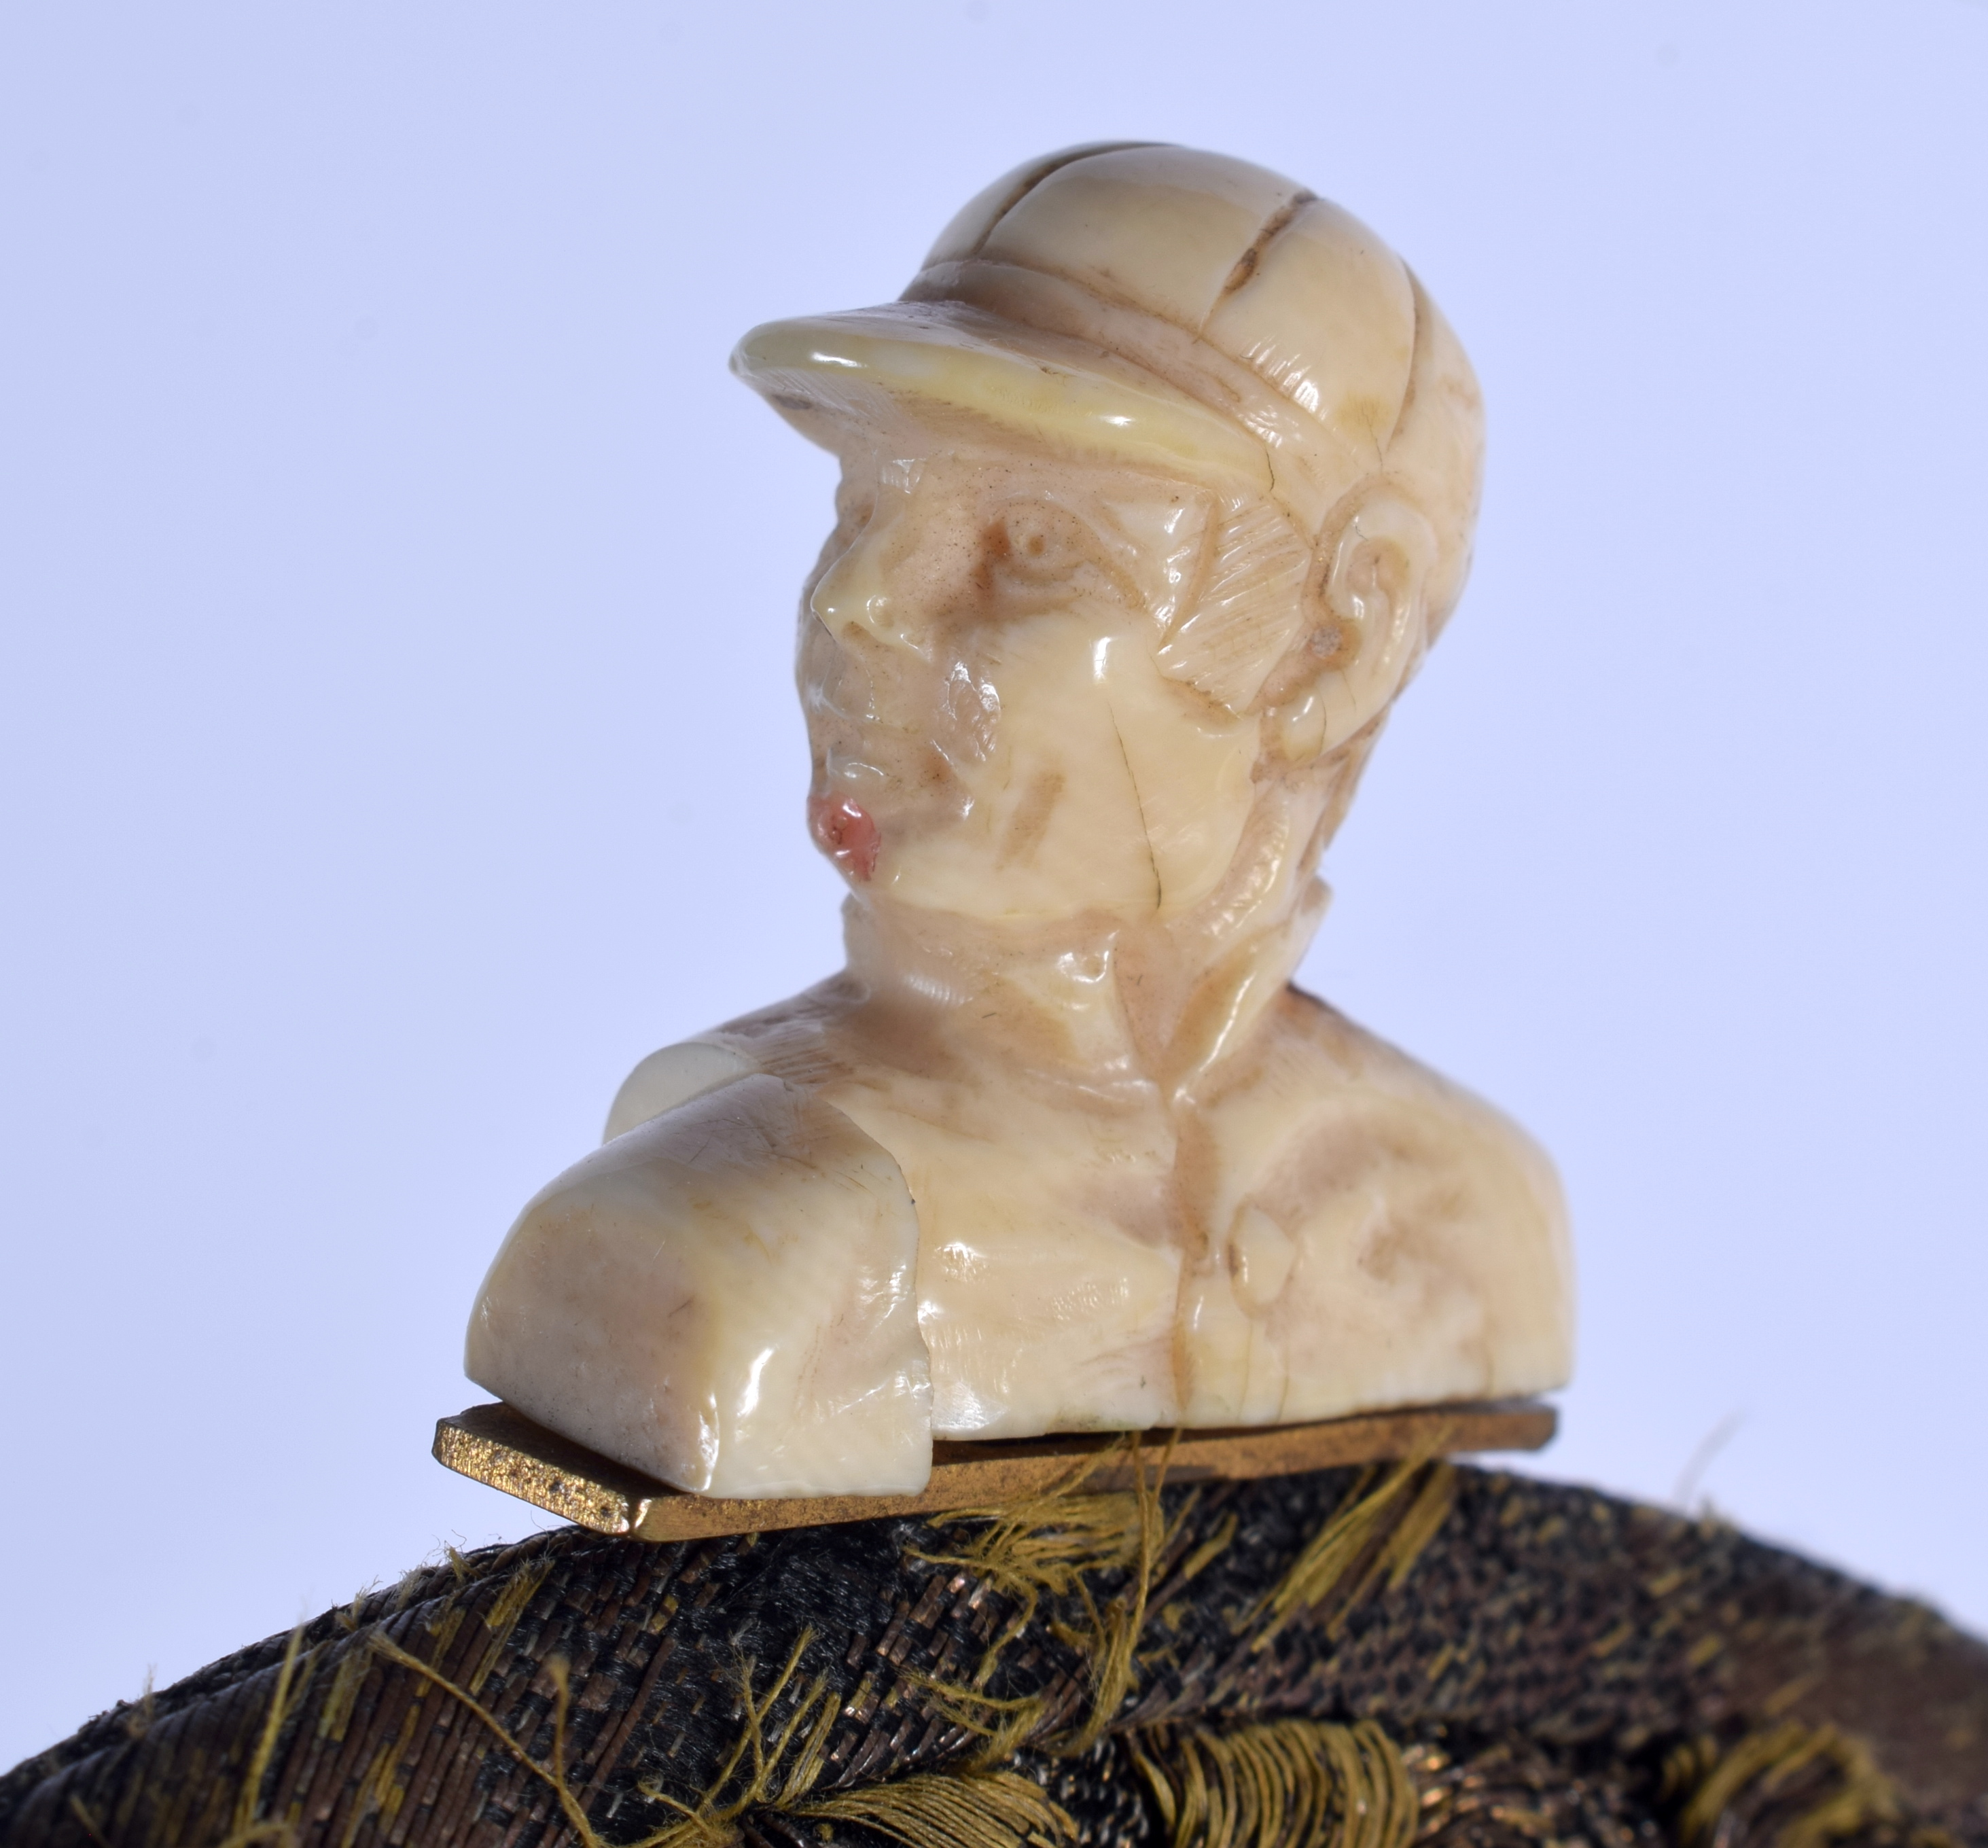 AN ANTIQUE CARVED IVORY JOCKEY HEAD EMBROIDERED SILK PURSE. 21 cm x 18 cm. - Image 3 of 3